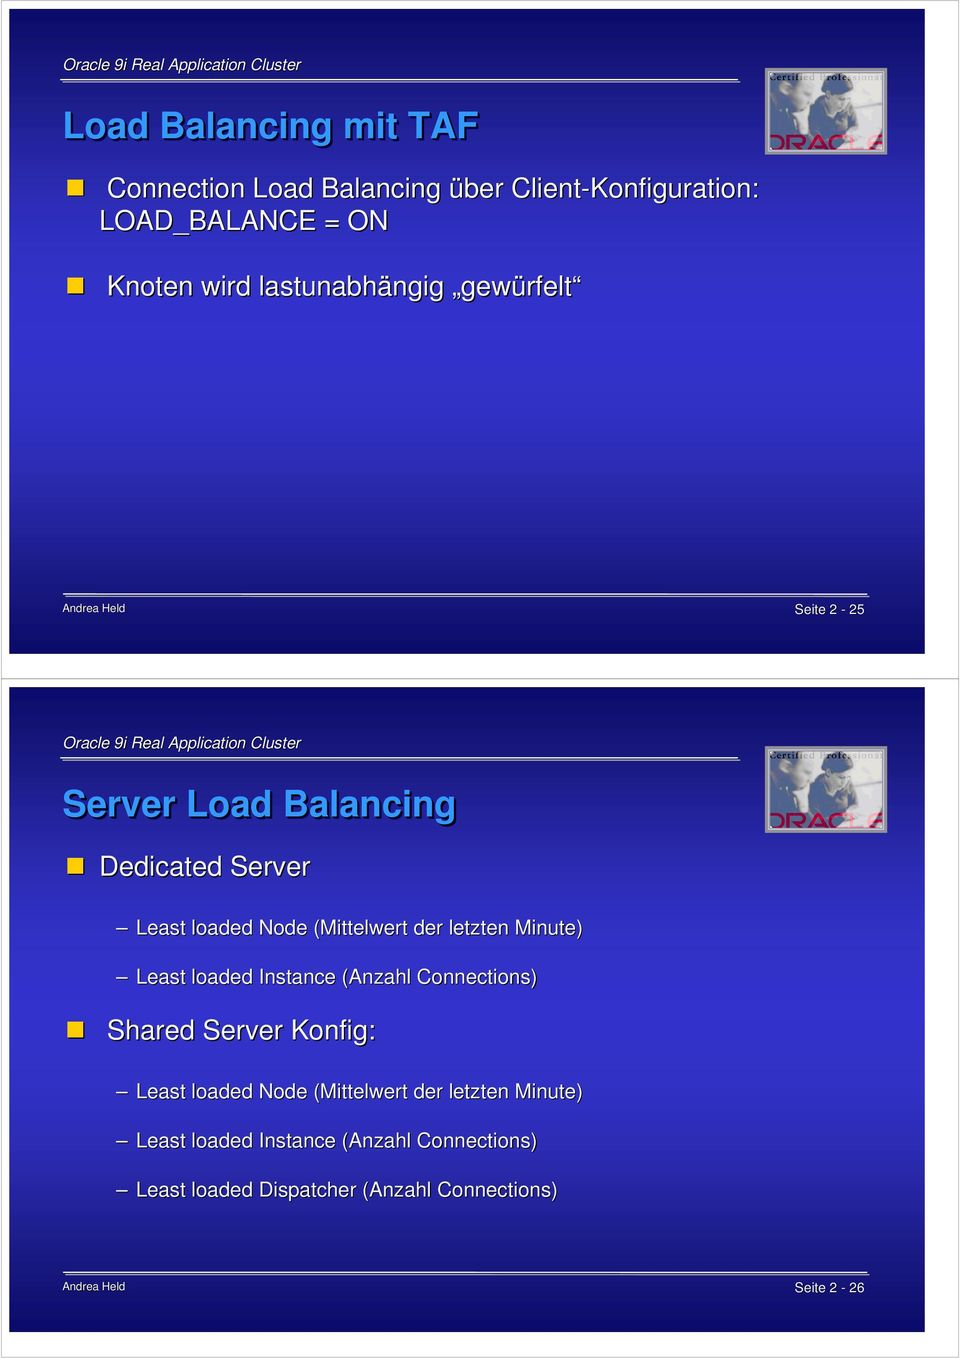 der letzten Minute) Least loaded Instance (Anzahl Connections) Shared Server Konfig: Least loaded Node